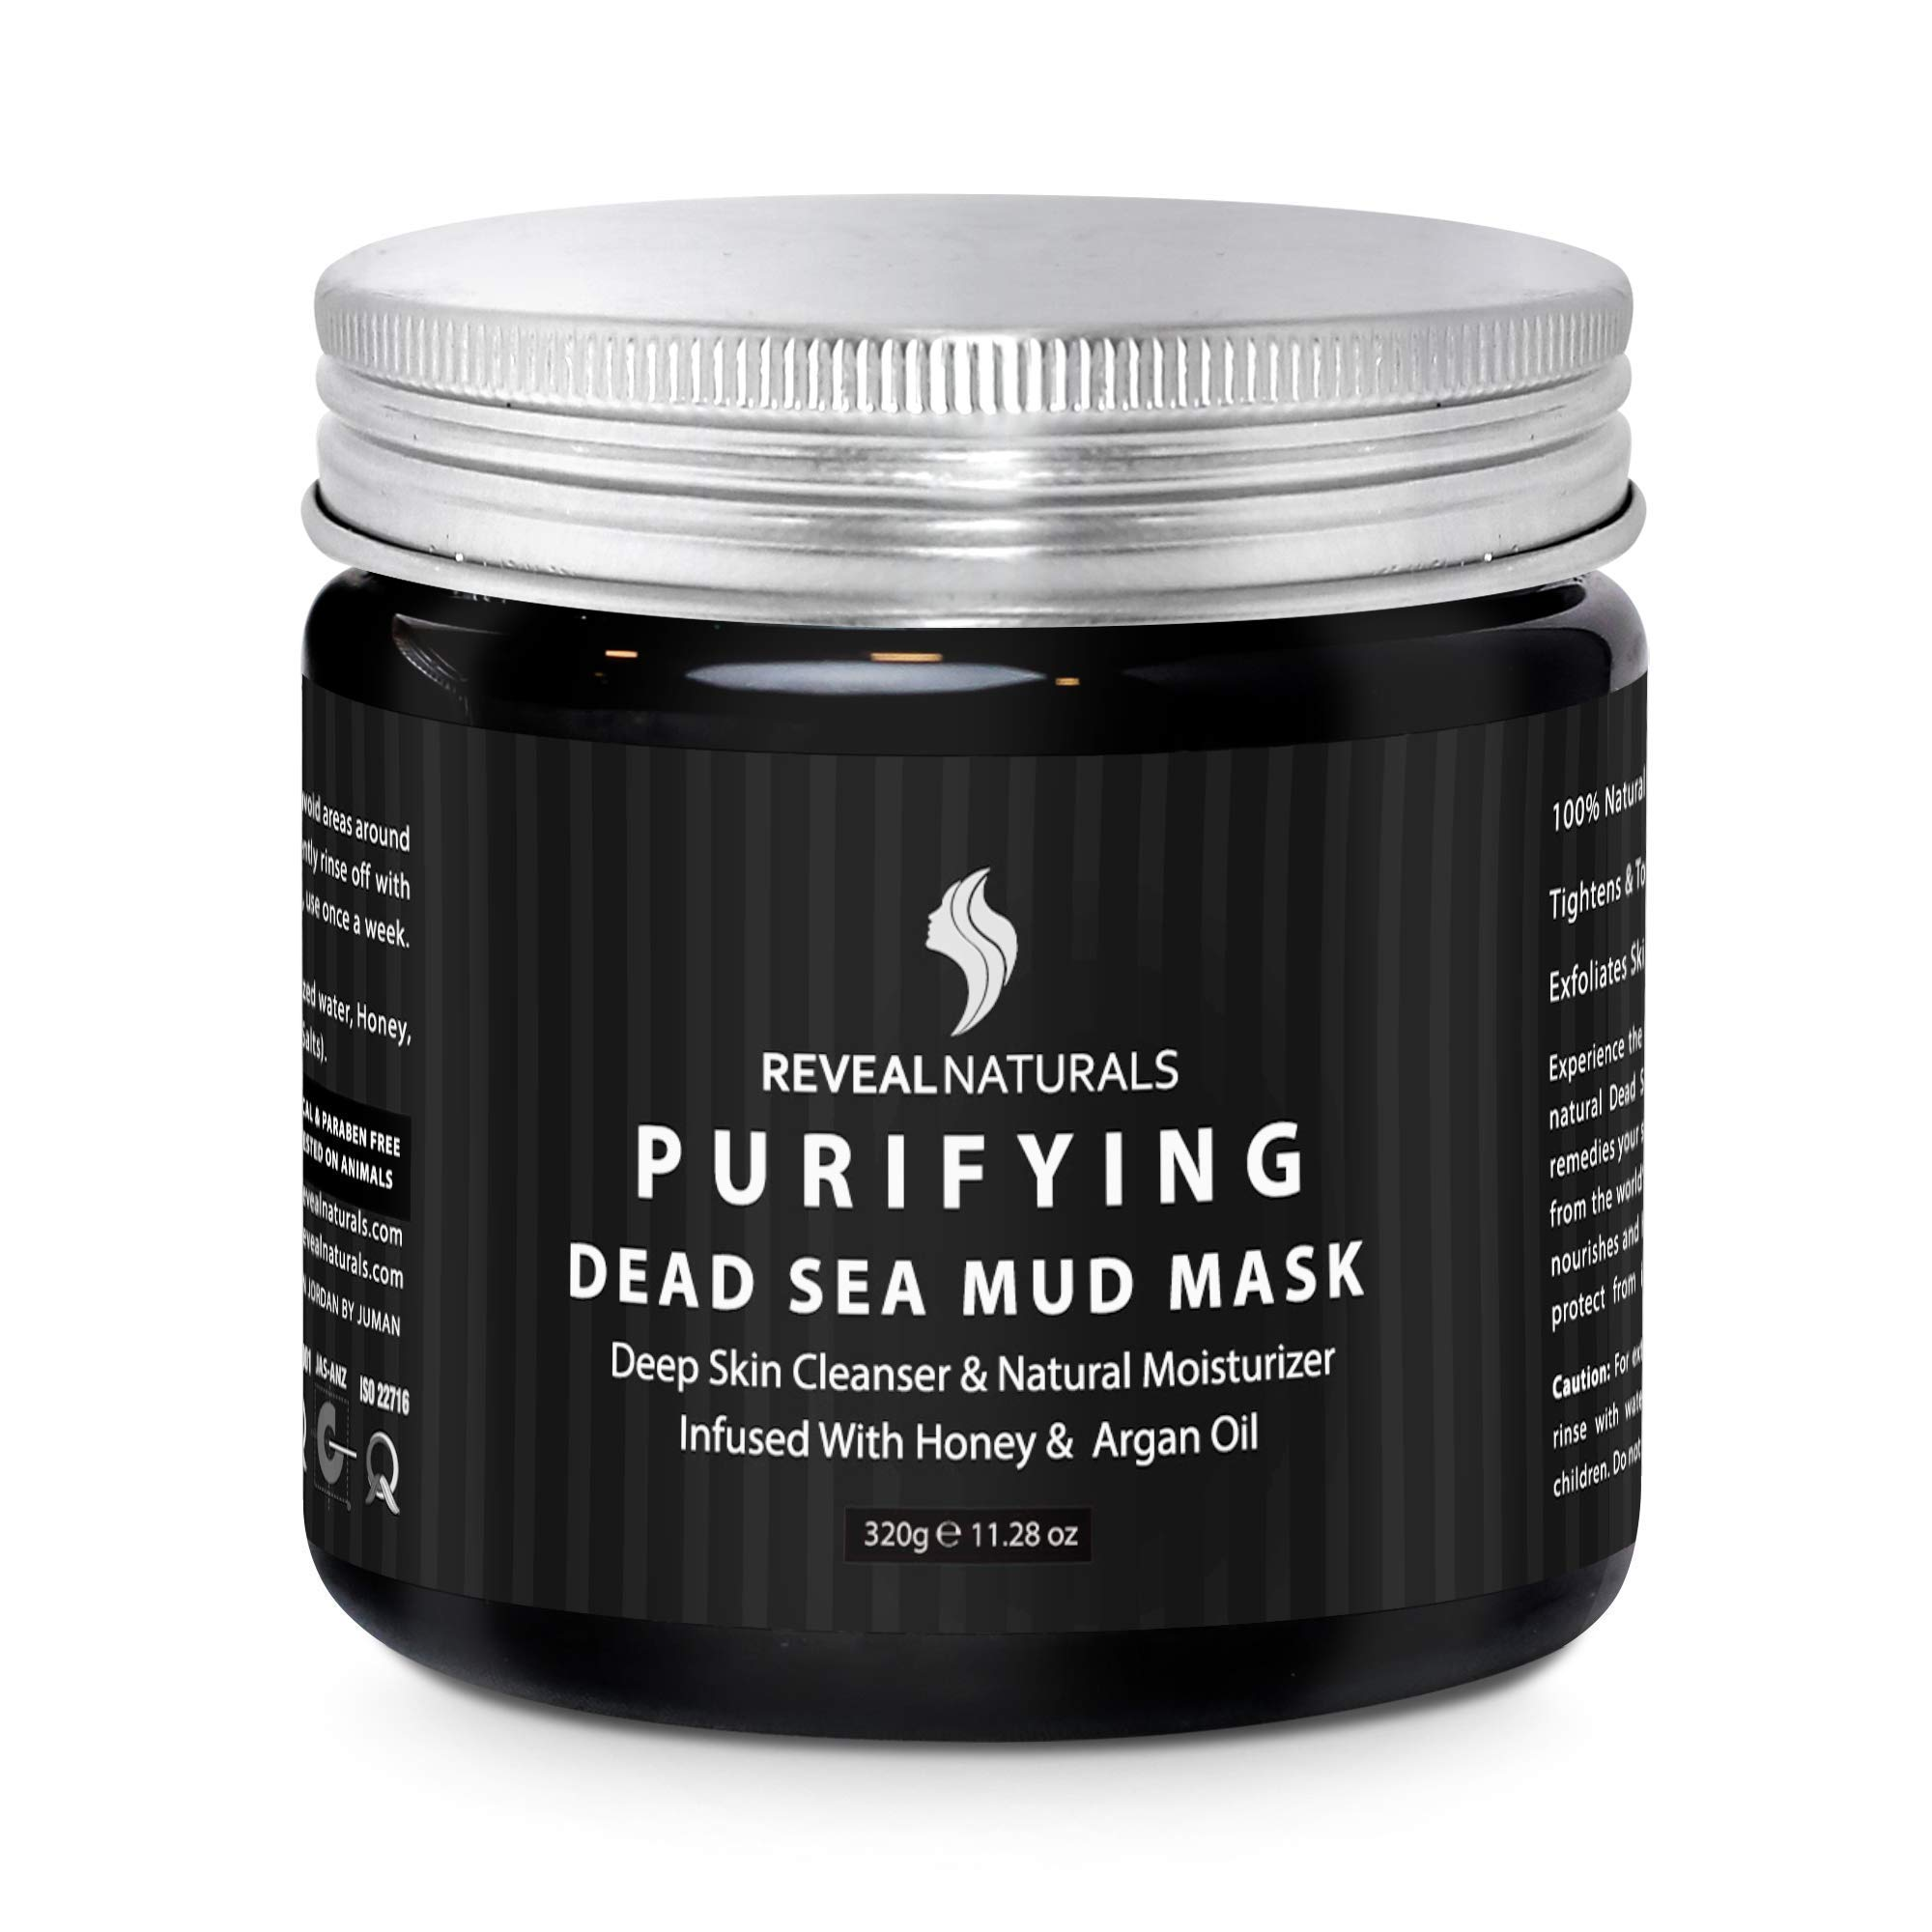 Face & Body Purifying Dead Sea Mineral Mud Mask by Reveal Naturals -Gentle Honey & Argan Oil Mud Mask,Natural Pure Cleansing Pore Minimizer and Skin Detox for Acne, Blackheads, Eczema - 10.6 Ounces